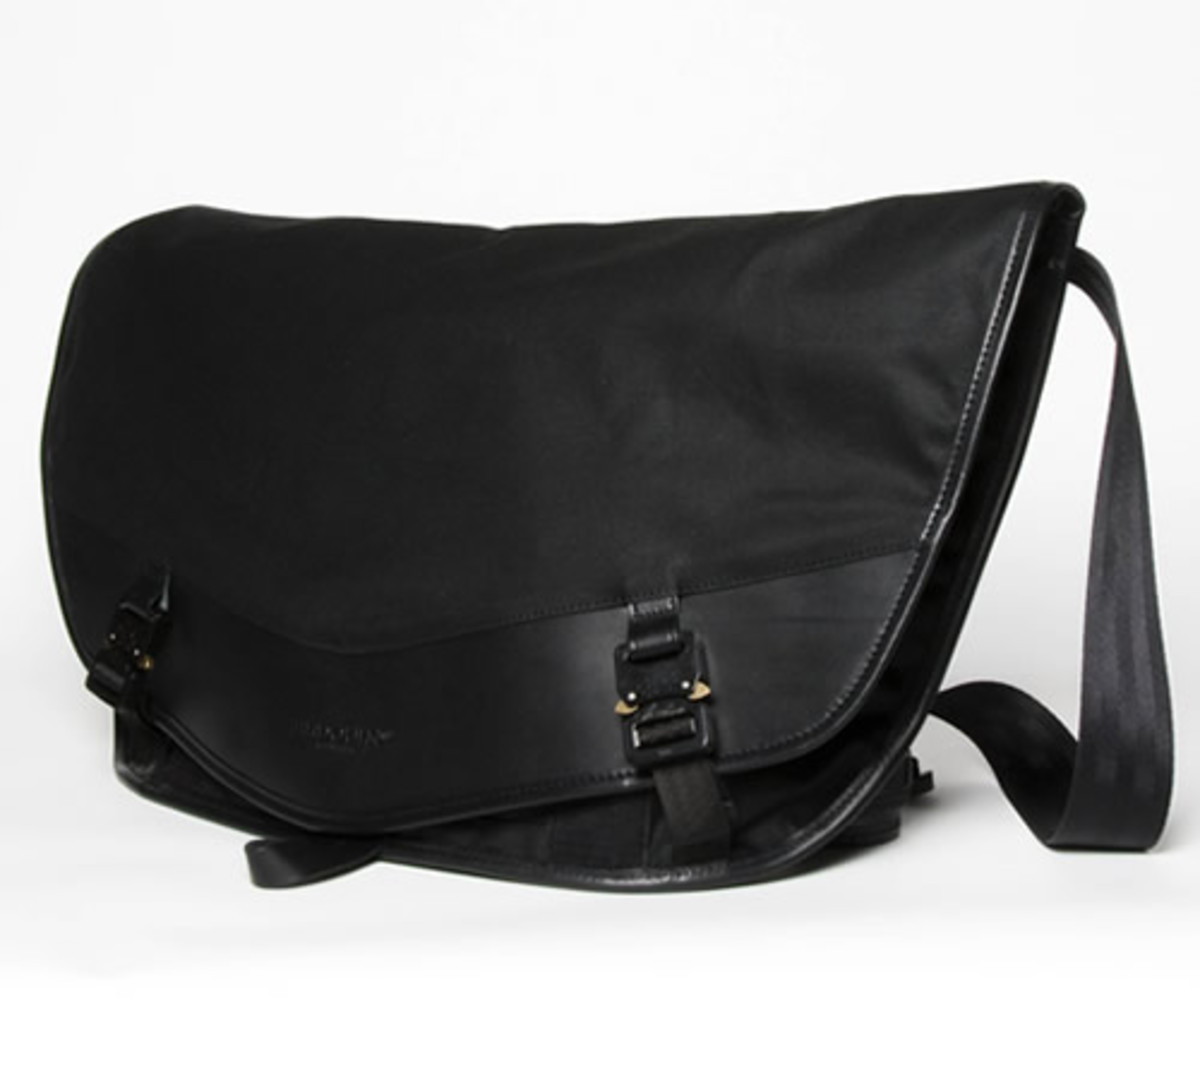 Bedouin S Barbary Messenger Bag Is For Those Of You Who Need To Carry Everything On The Daily Commute Designed Fit Body Made From 12oz